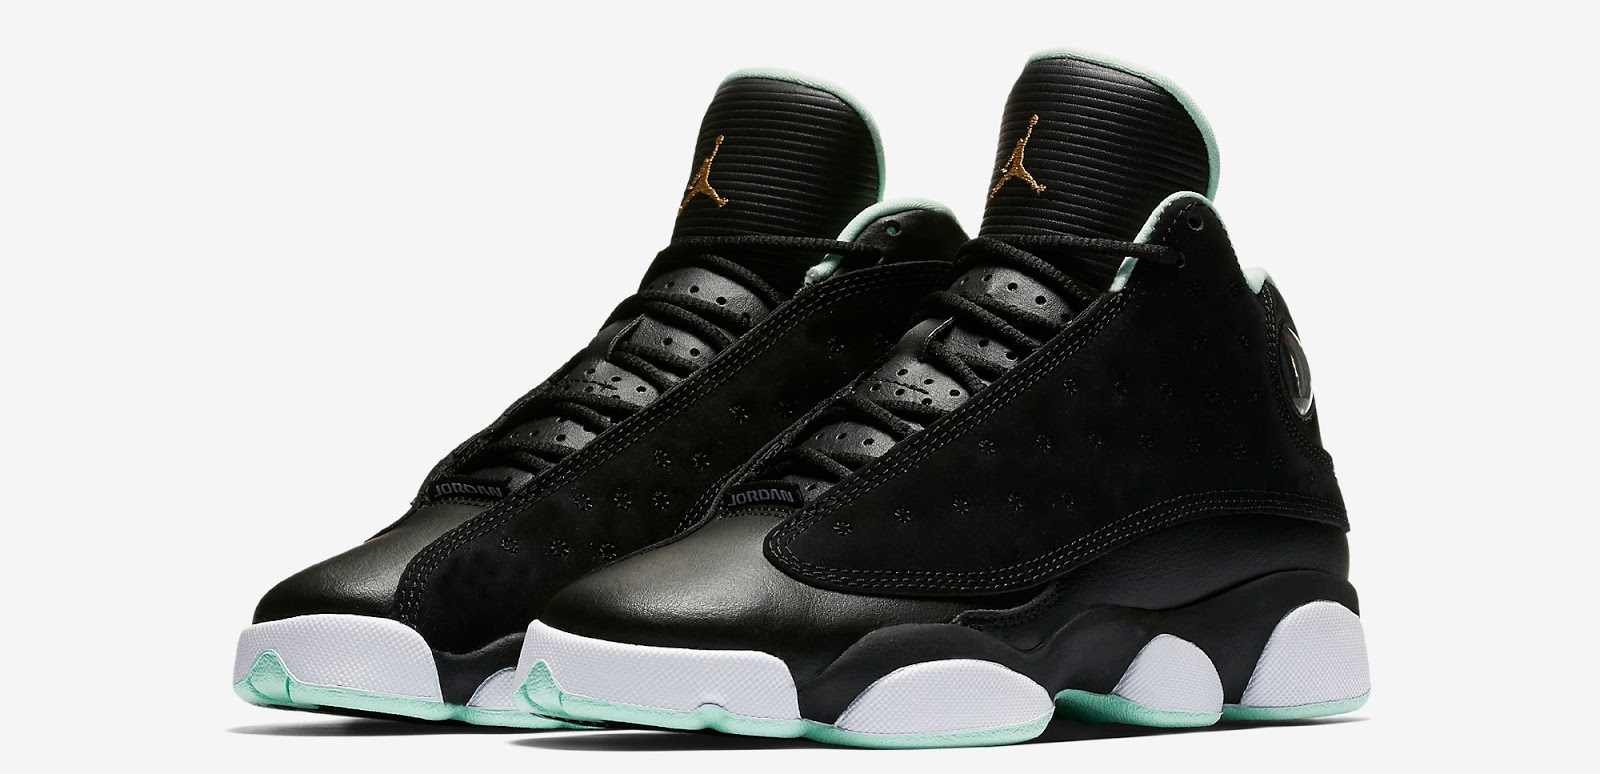 half off 70dfd 93a5c Ladies, the latest Girls Air Jordan 13 Retro hits stores this weekend.